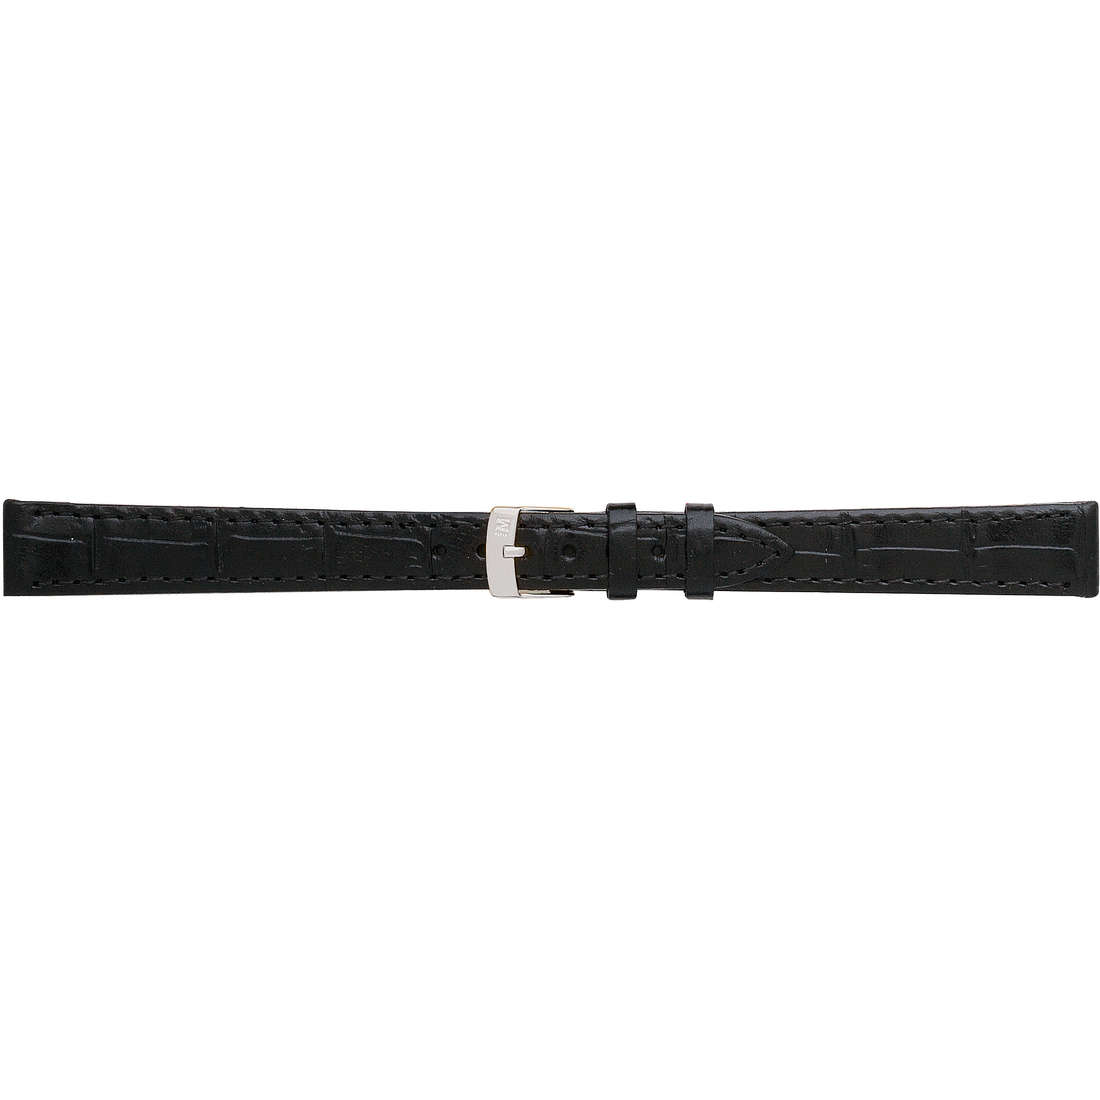 watch watch bands watch straps unisex Morellato I Lunghi A01Y2524656019CR14